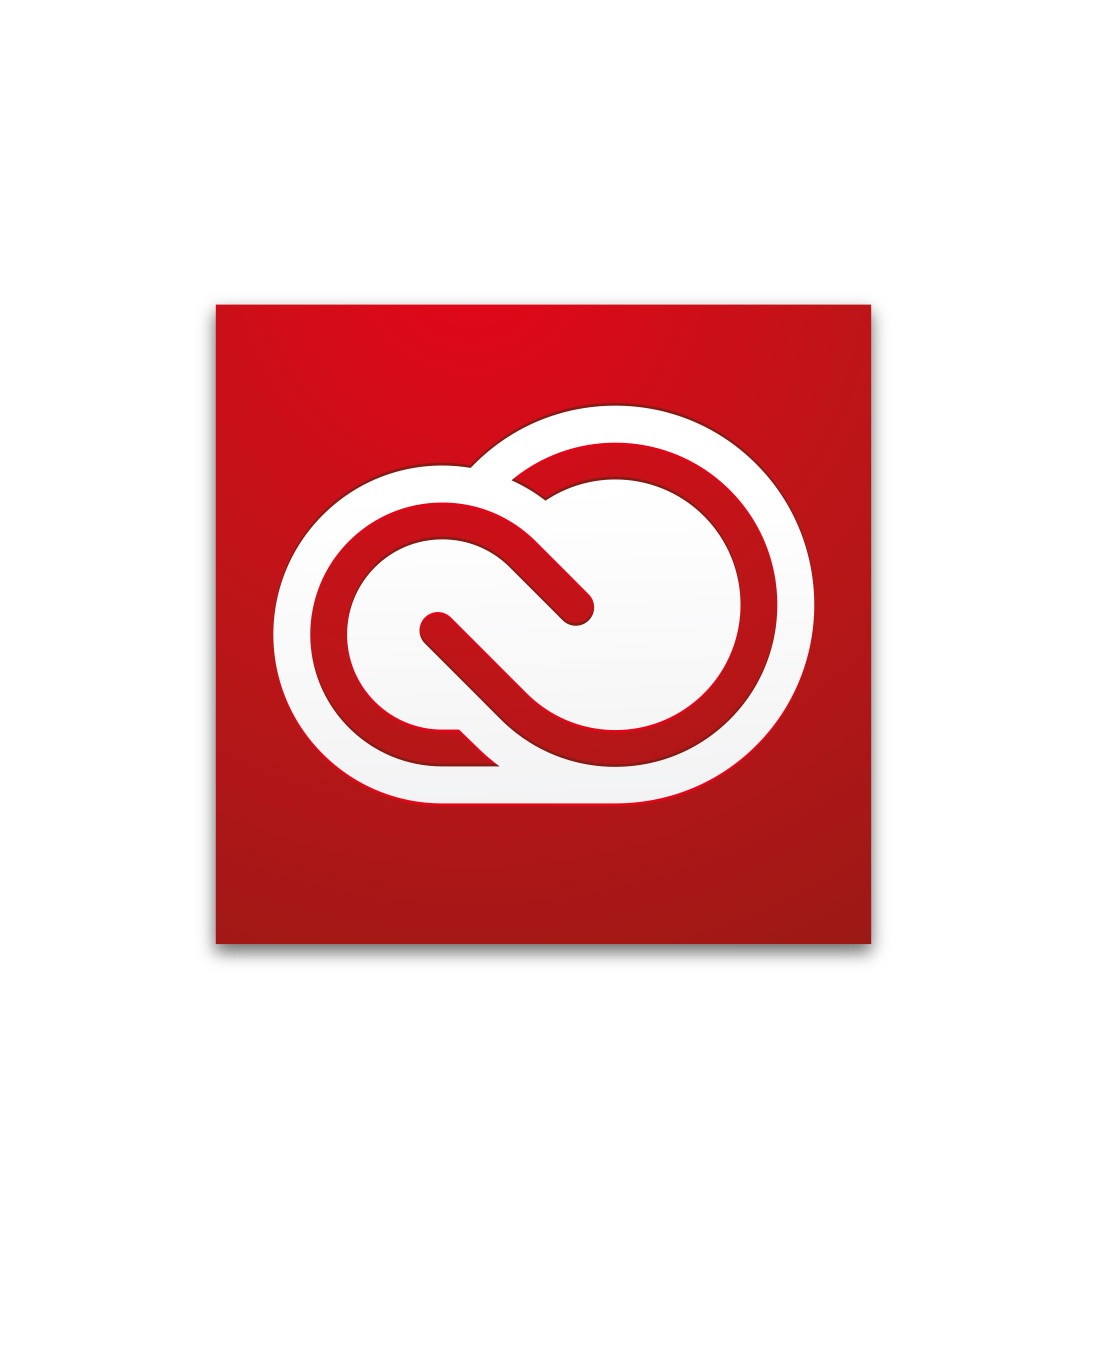 1 Jahr Subscription Renewal für Adobe Creative Cloud for Teams All Apps VIP Lizenz Download Win/Mac, Multilingual (10-49 Lizenzen) (65297757BA02A12)